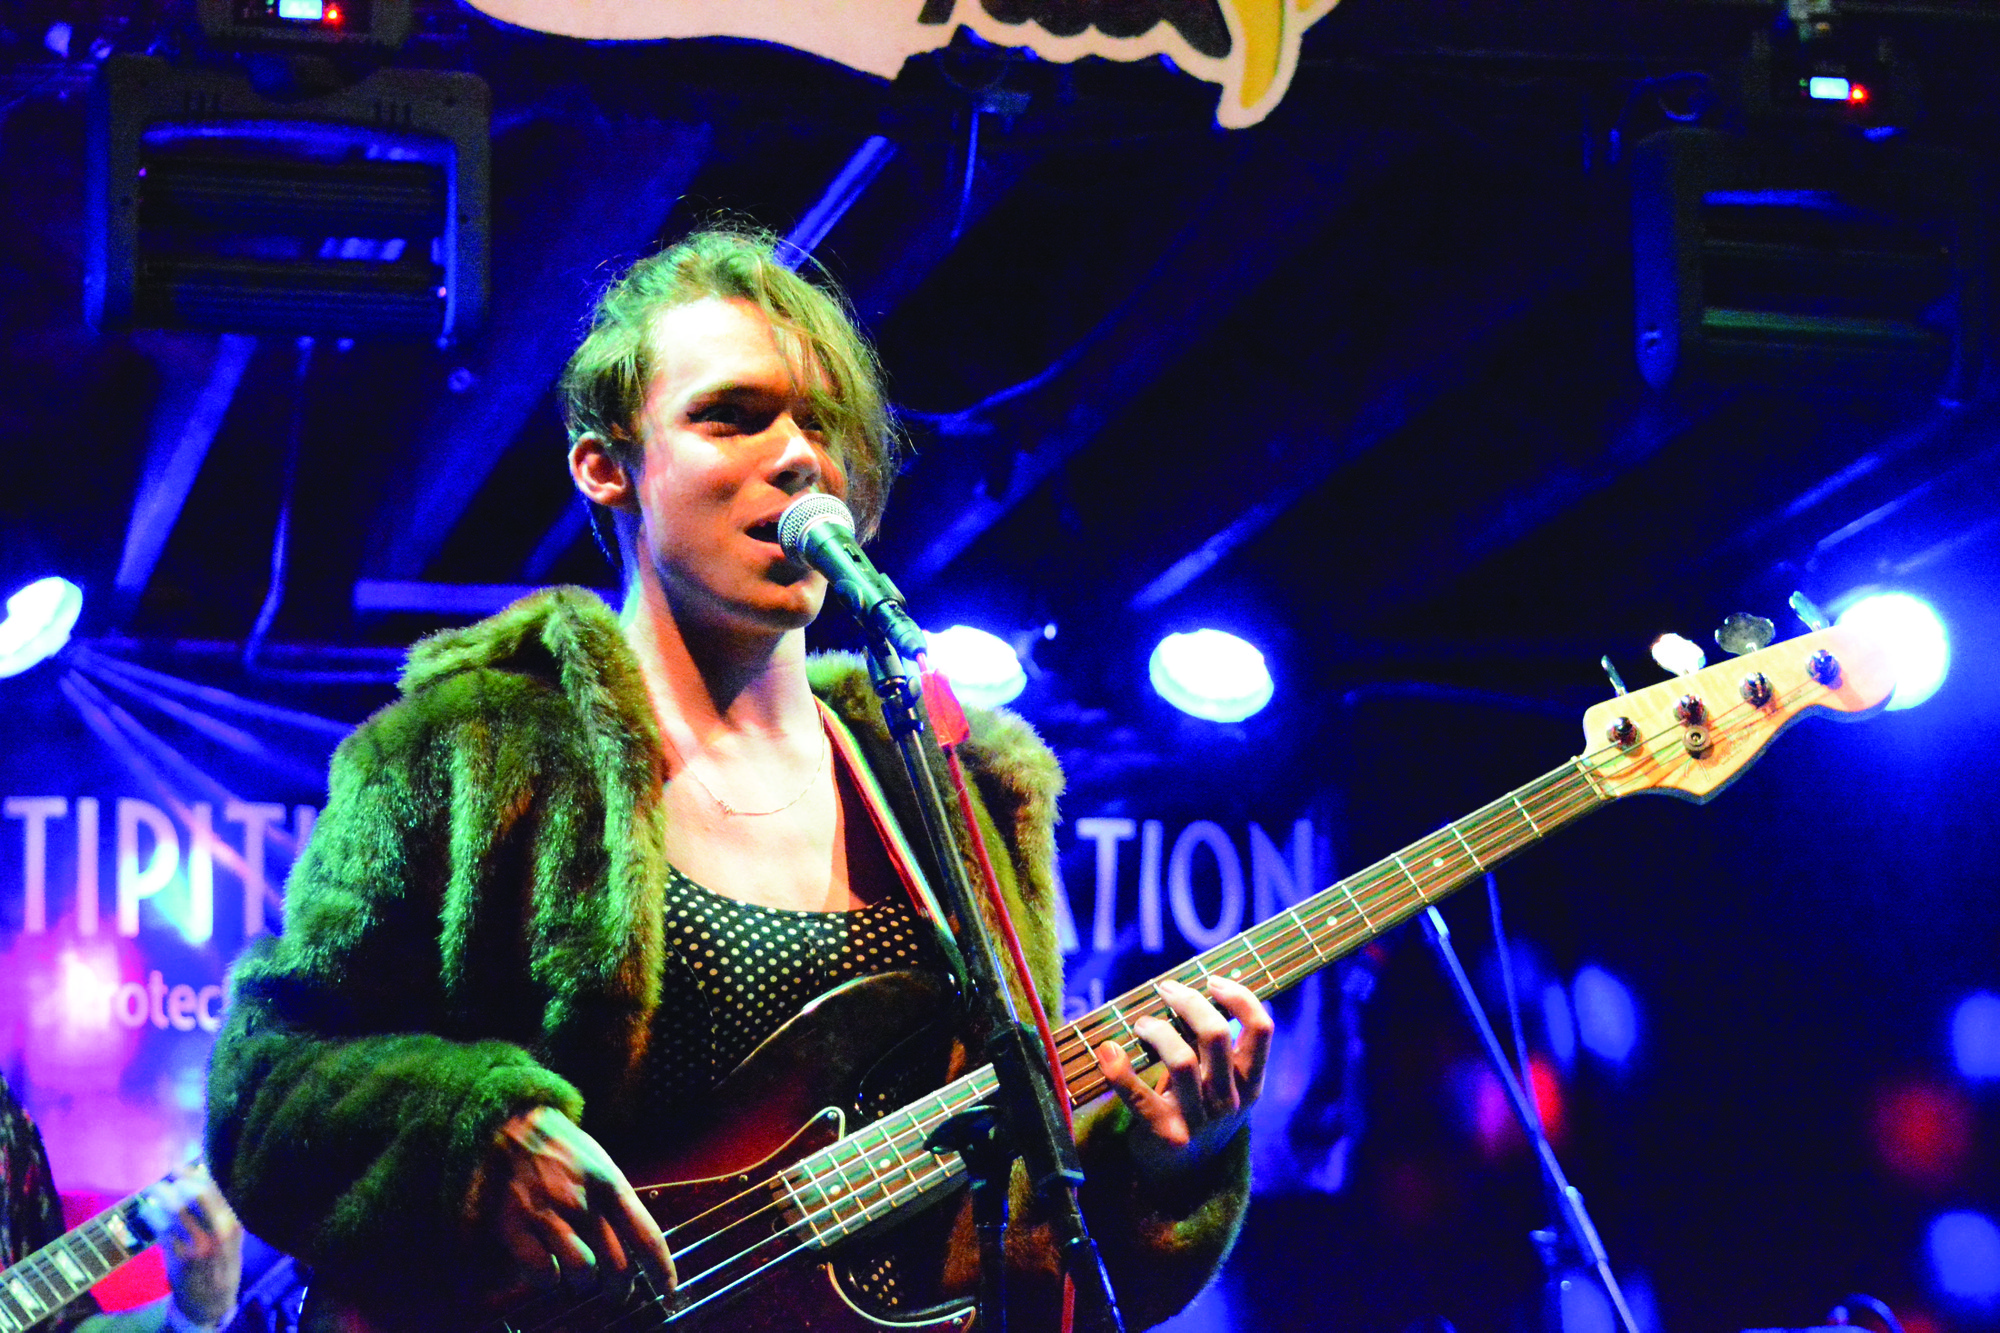 Fionn Hunter-Green, bassist and lead singer of $pare Change performing at Tipitina's. Hunter-Green has been with the band since it's inception in 2014. Photo credit: Davis Walden